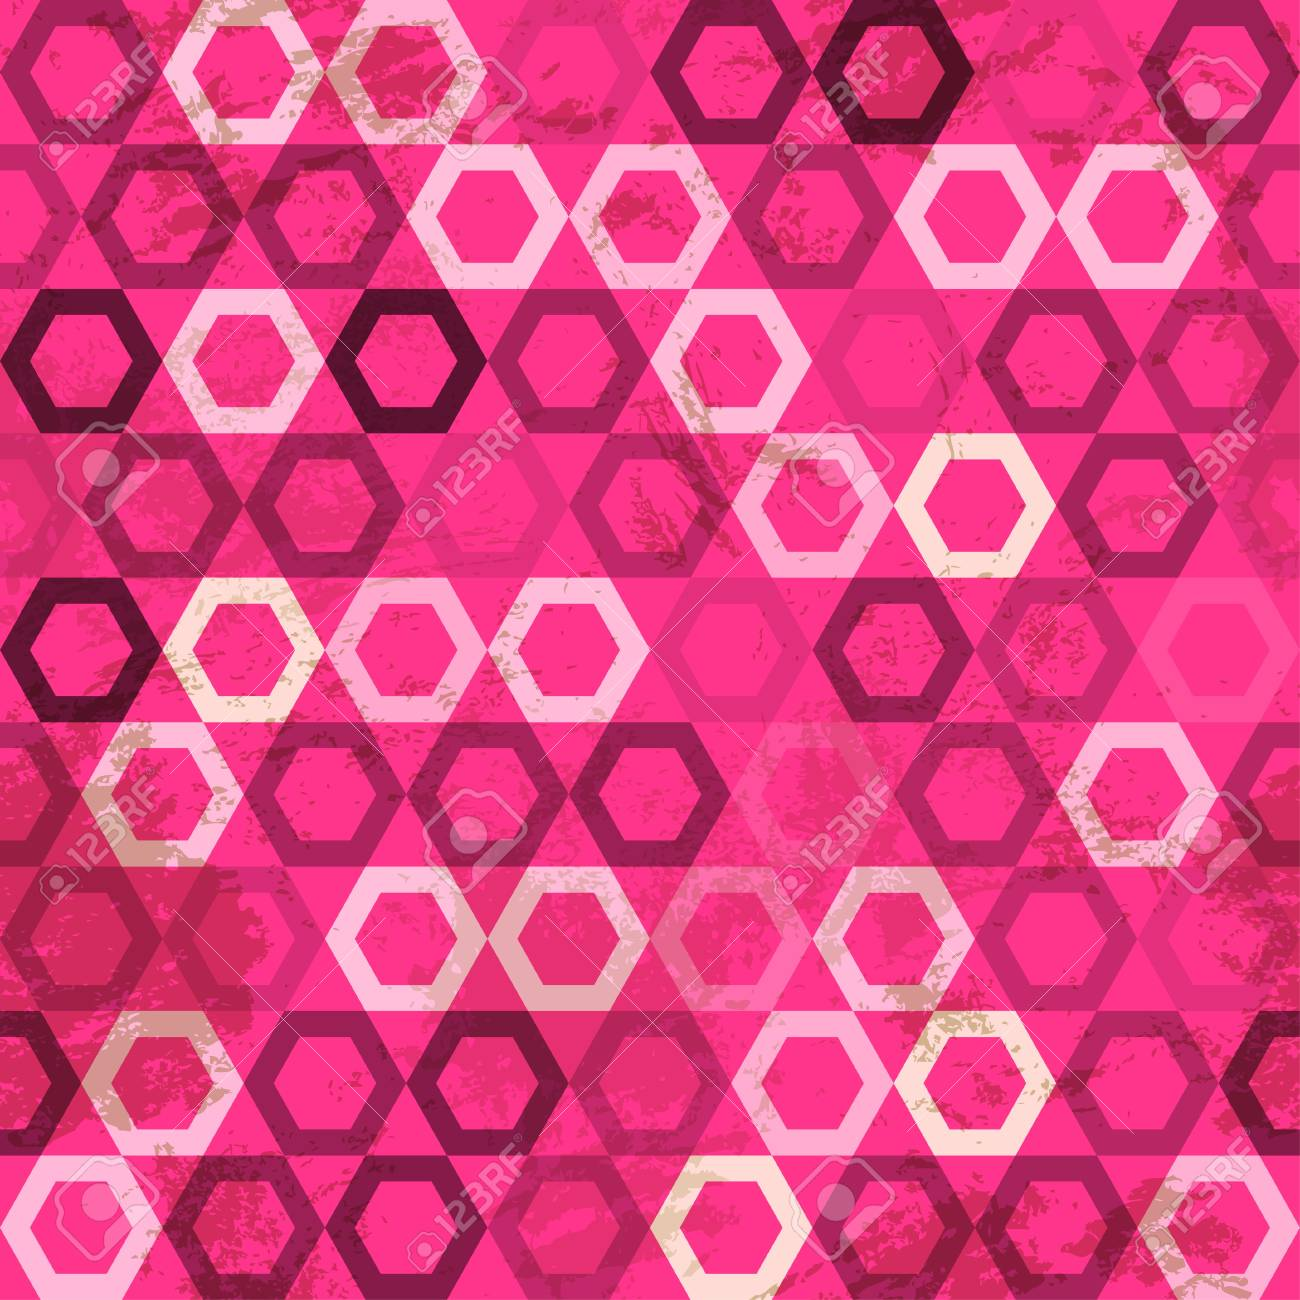 pink cell grunge seamless Stock Vector - 16665132